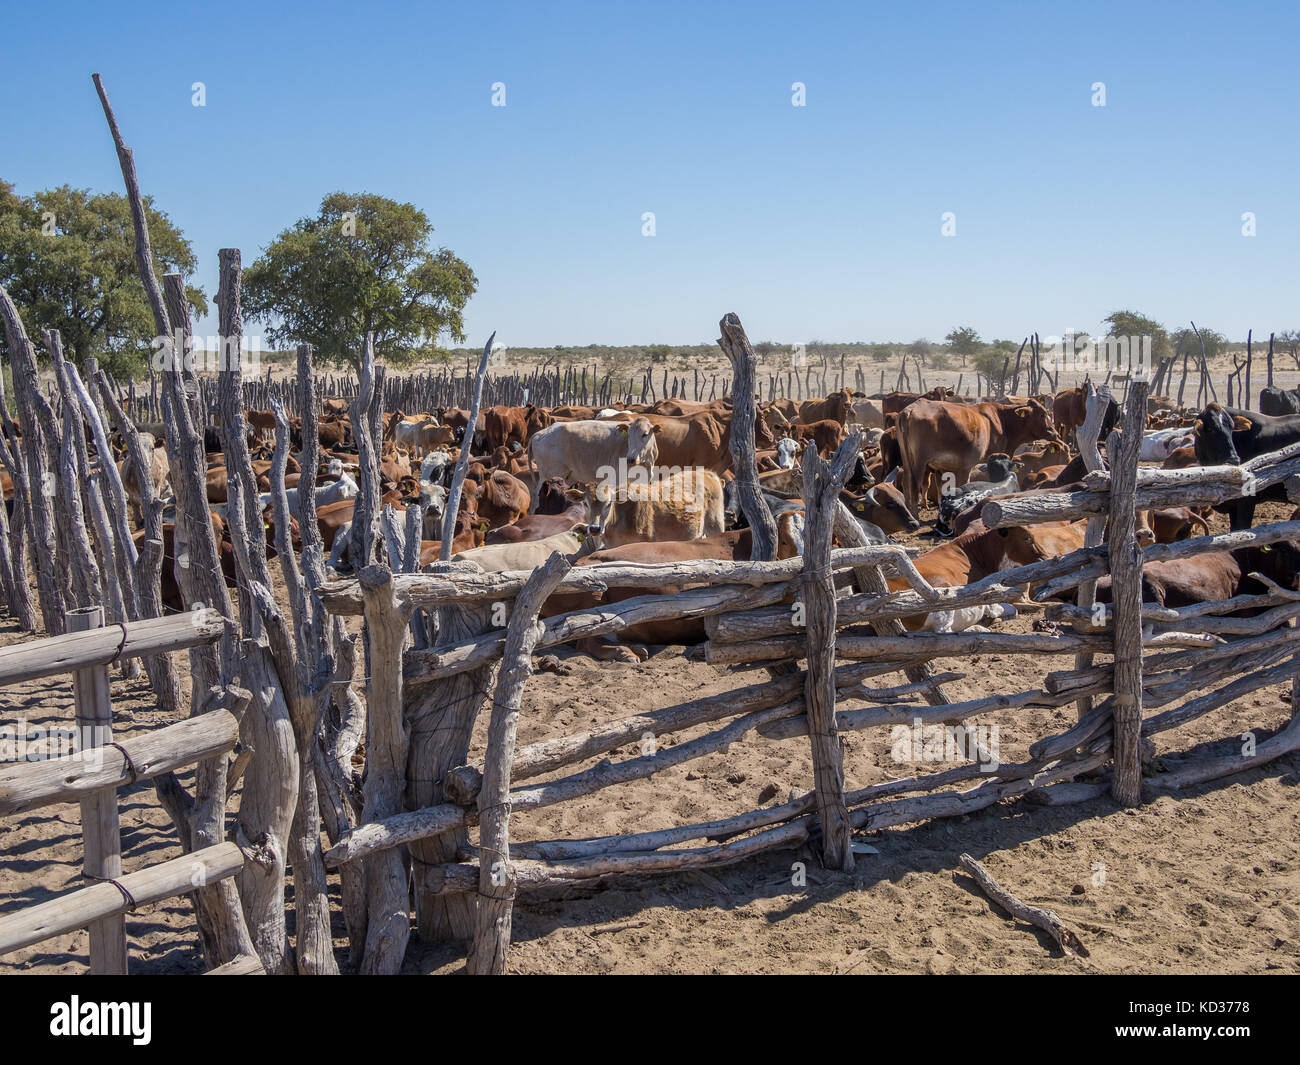 Traditional wooden cattle enclosure or pen with cow herd in the Kalahari desert of Botswana, Southern Africa - Stock Image